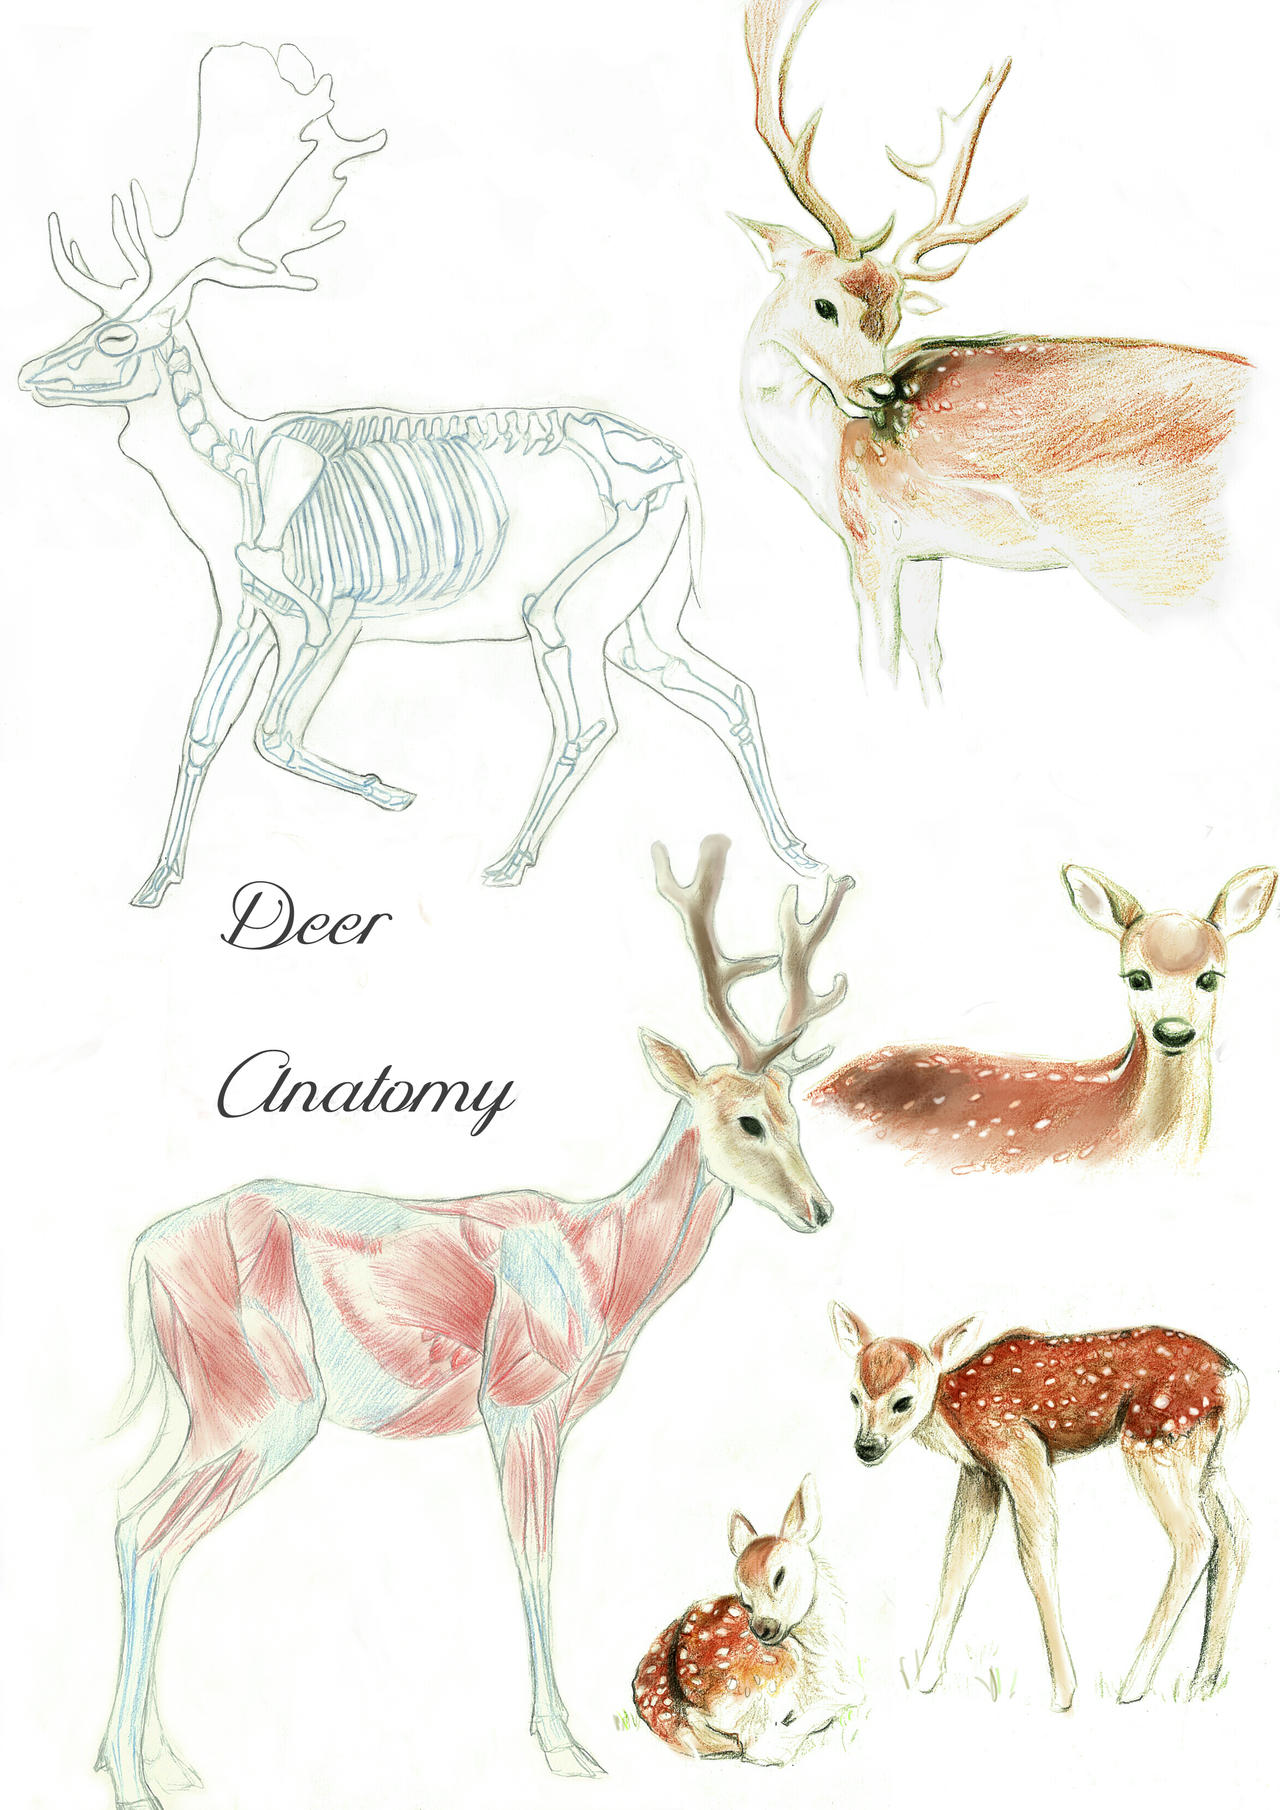 White tail deer anatomy 216005 - follow4more.info